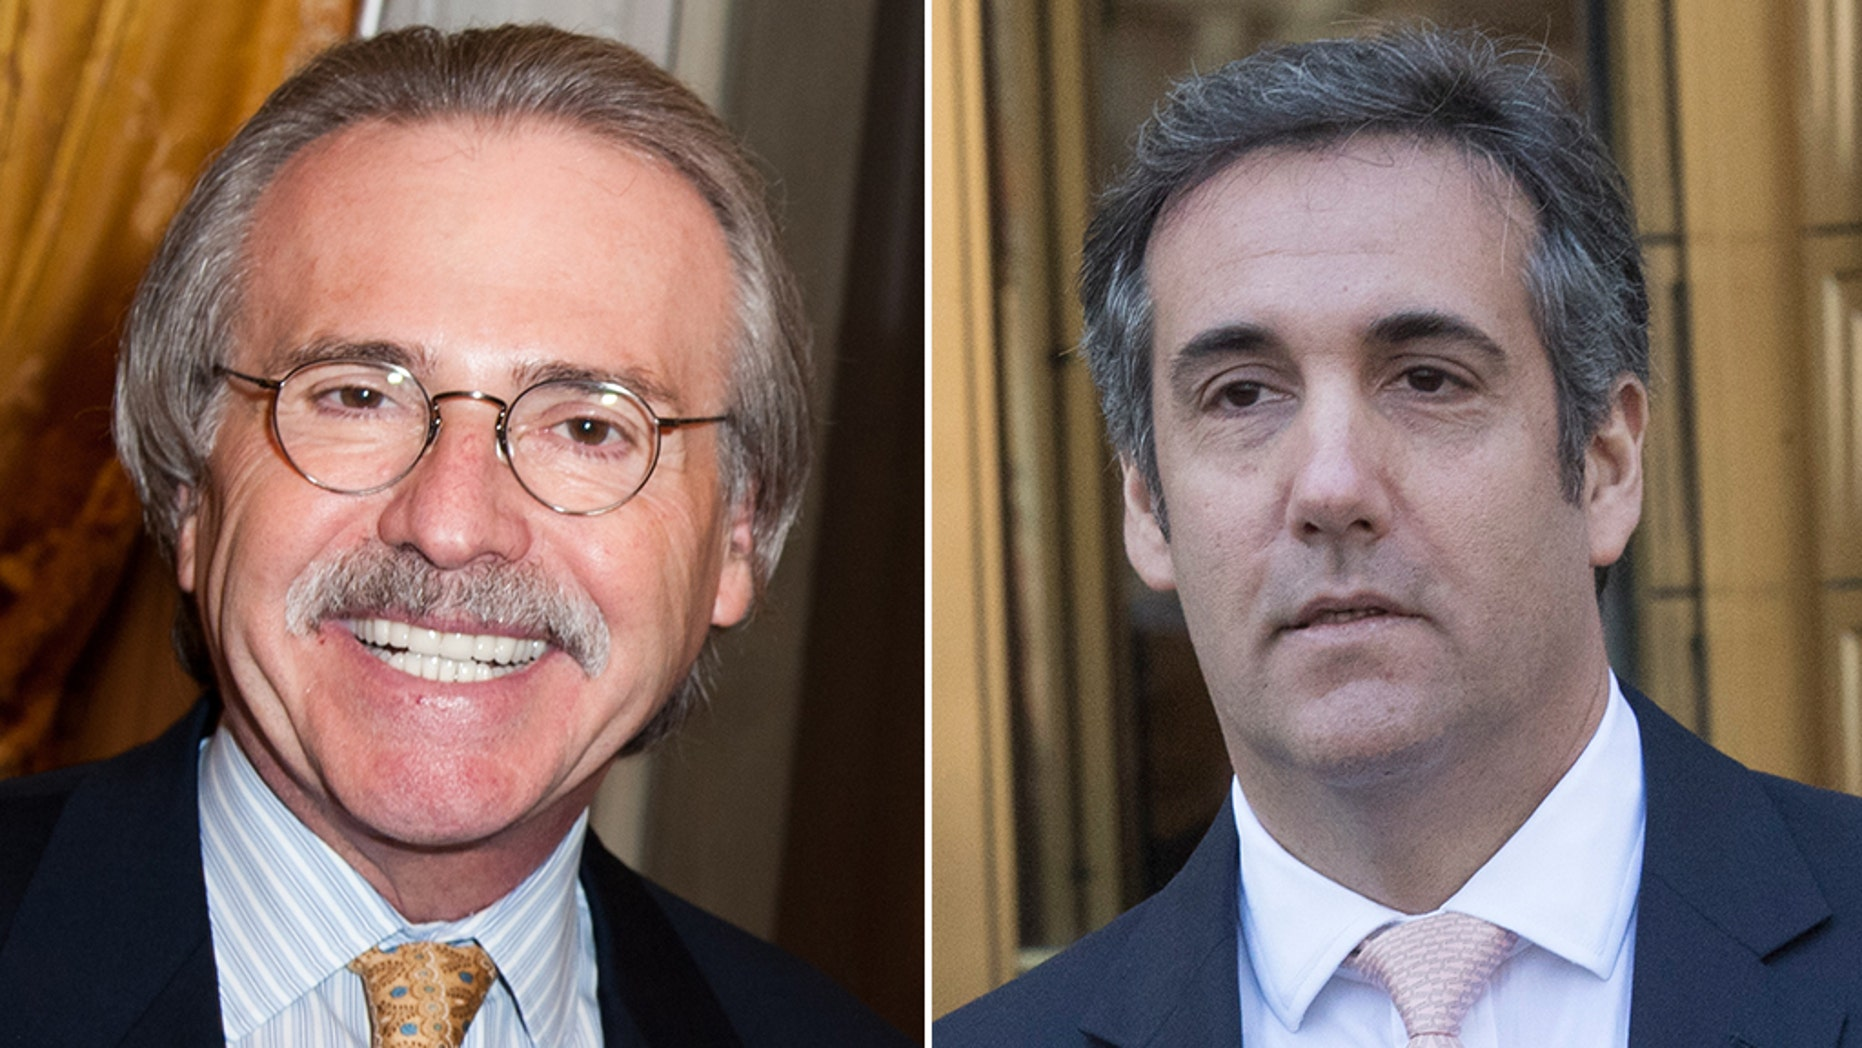 David Pecker, chairman and chief executive of National Enquirer publisher American Media (left) and Michael Cohen (right), former personal attorney for President Trump.